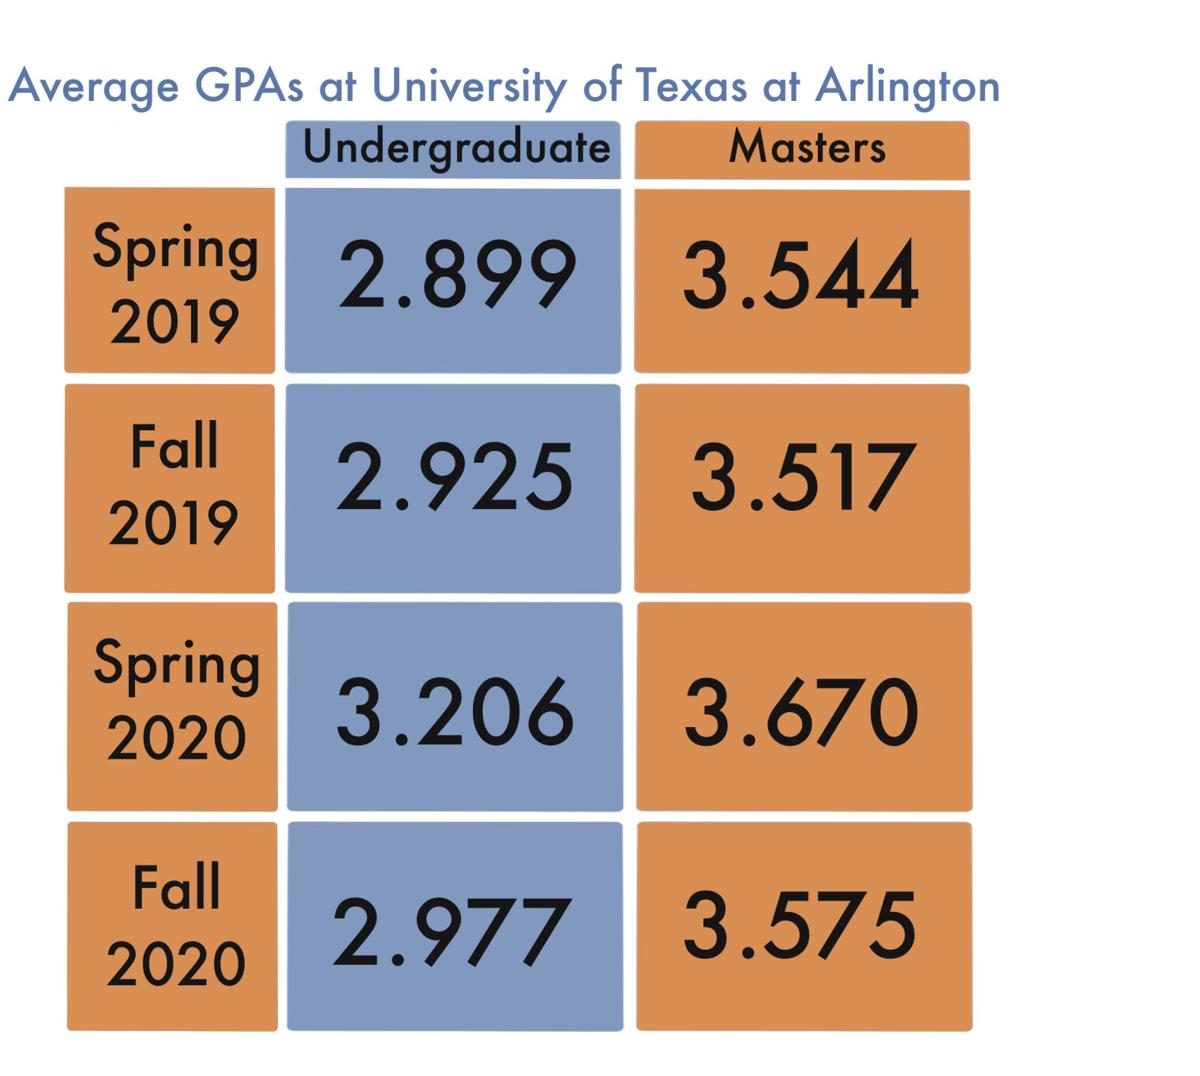 Online learning experience has not decreased GPA averages